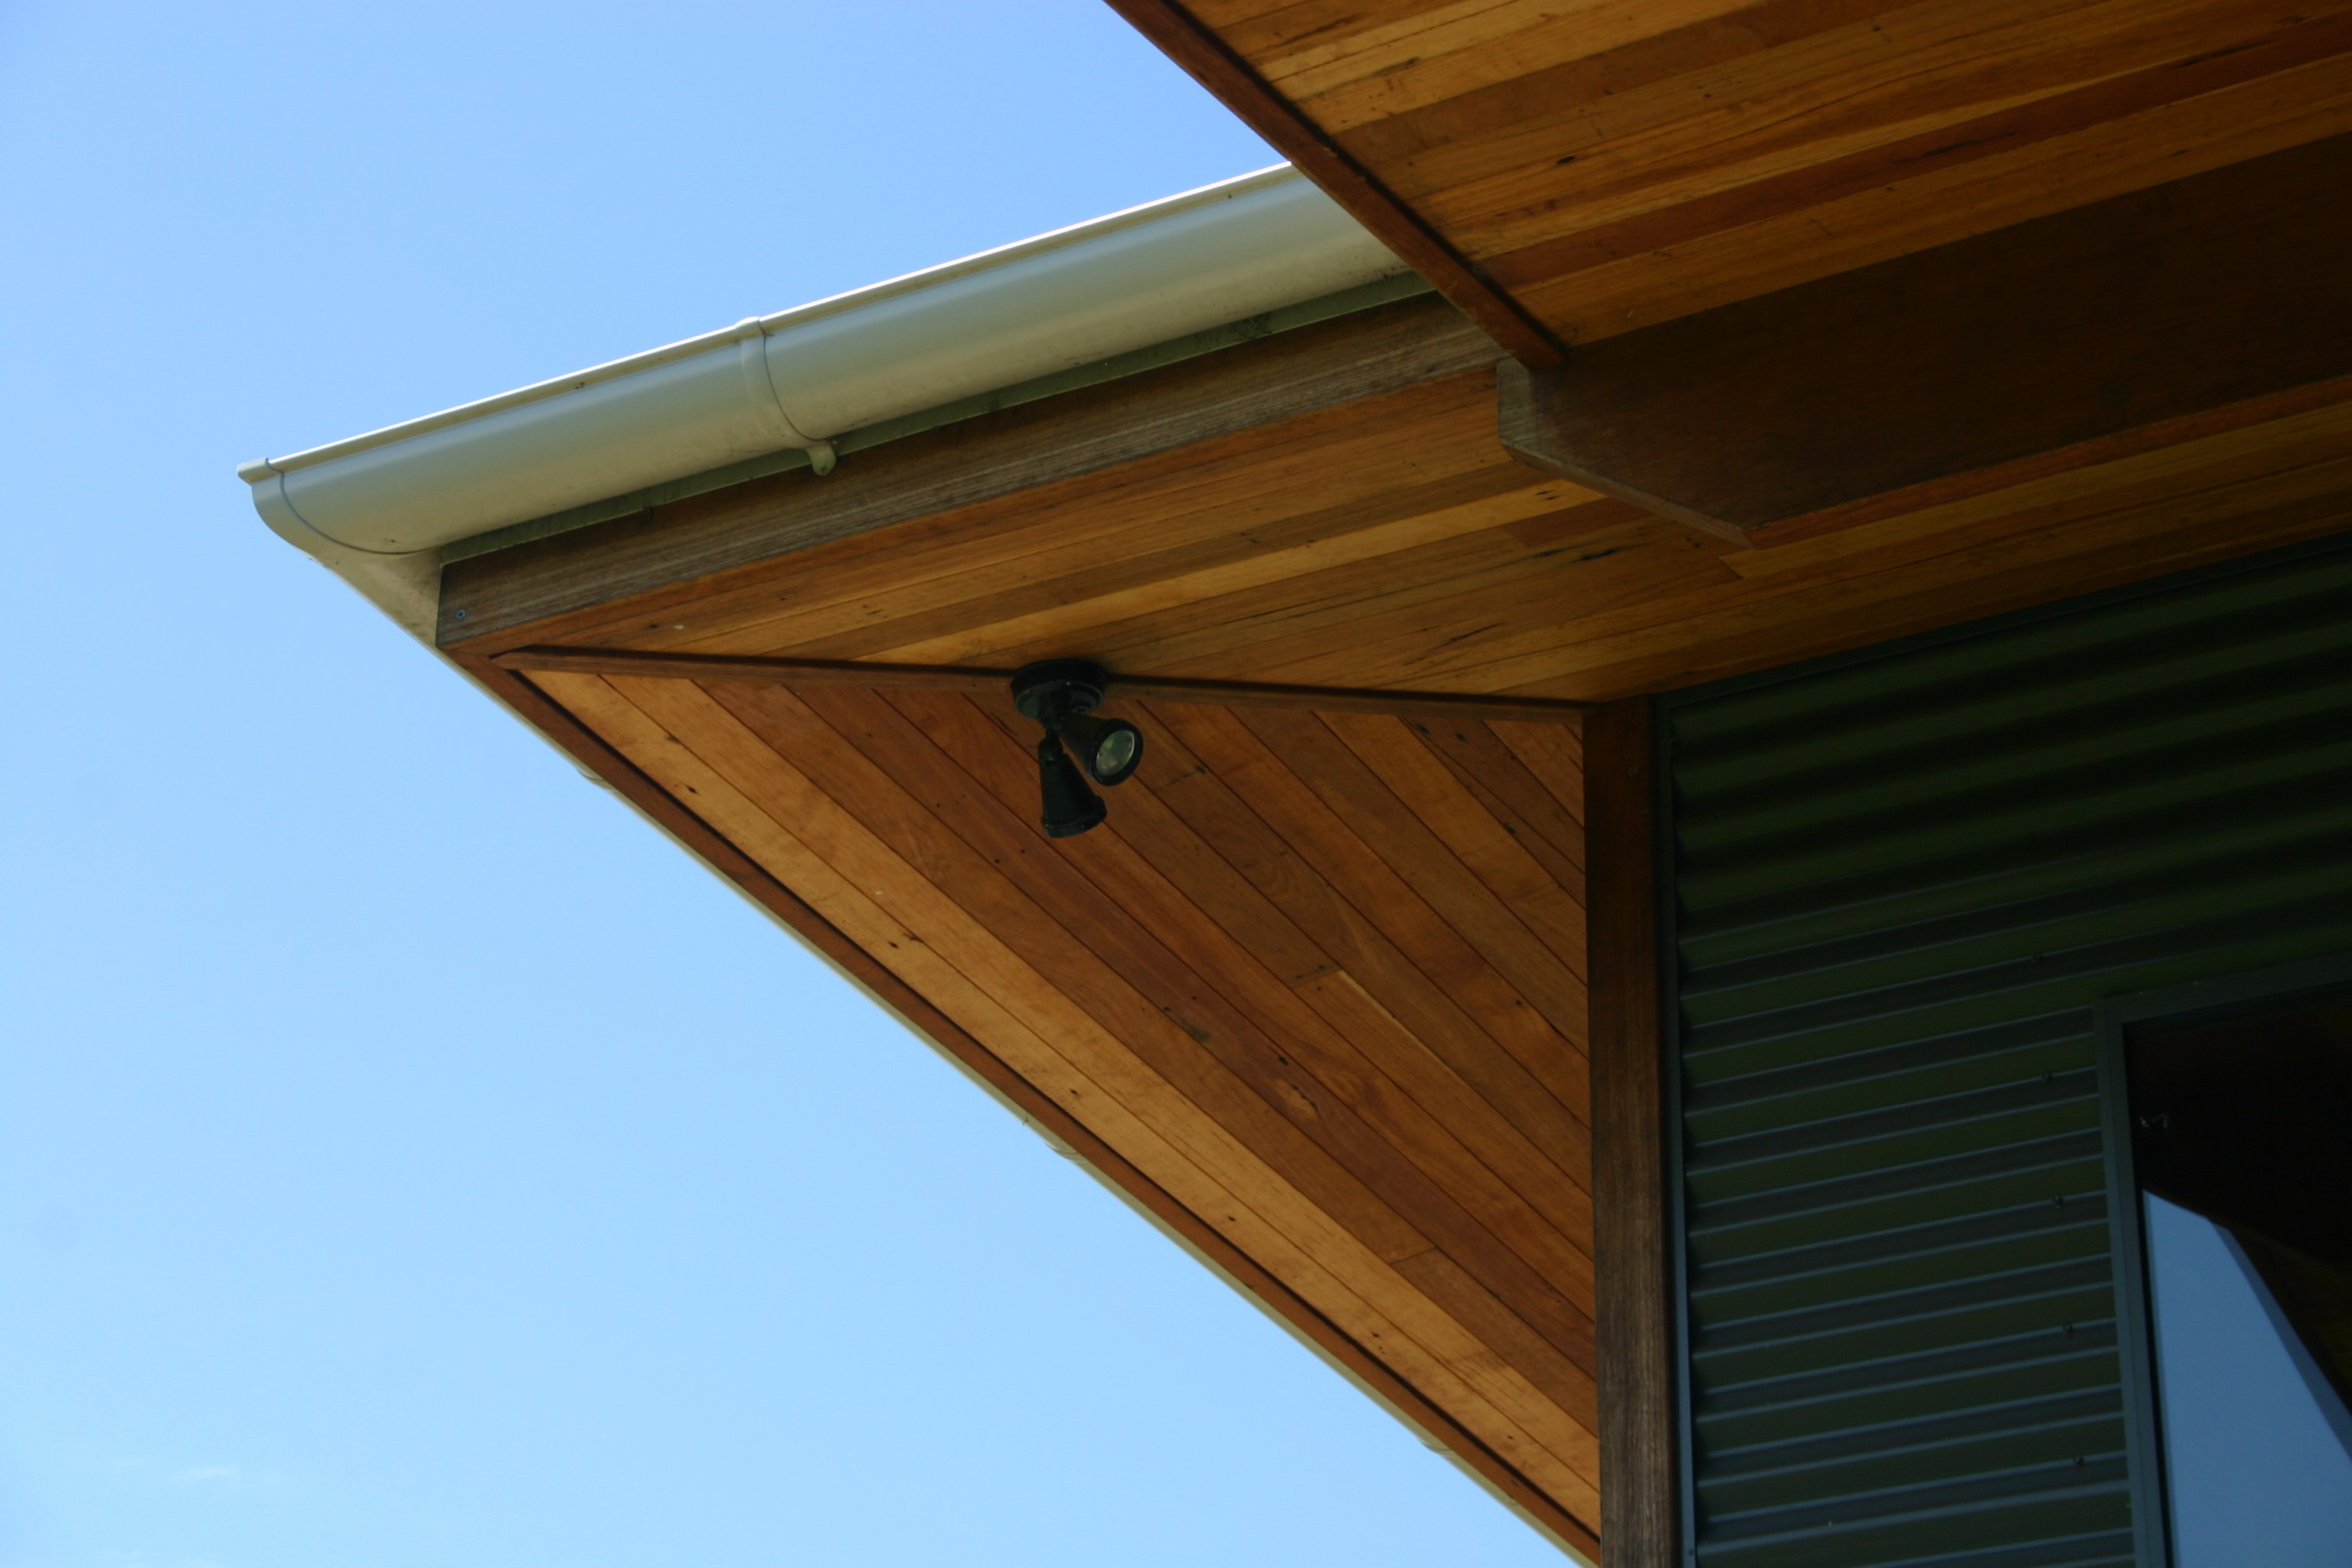 Timber Lined Eaves with calculated overhang and half-round gutter